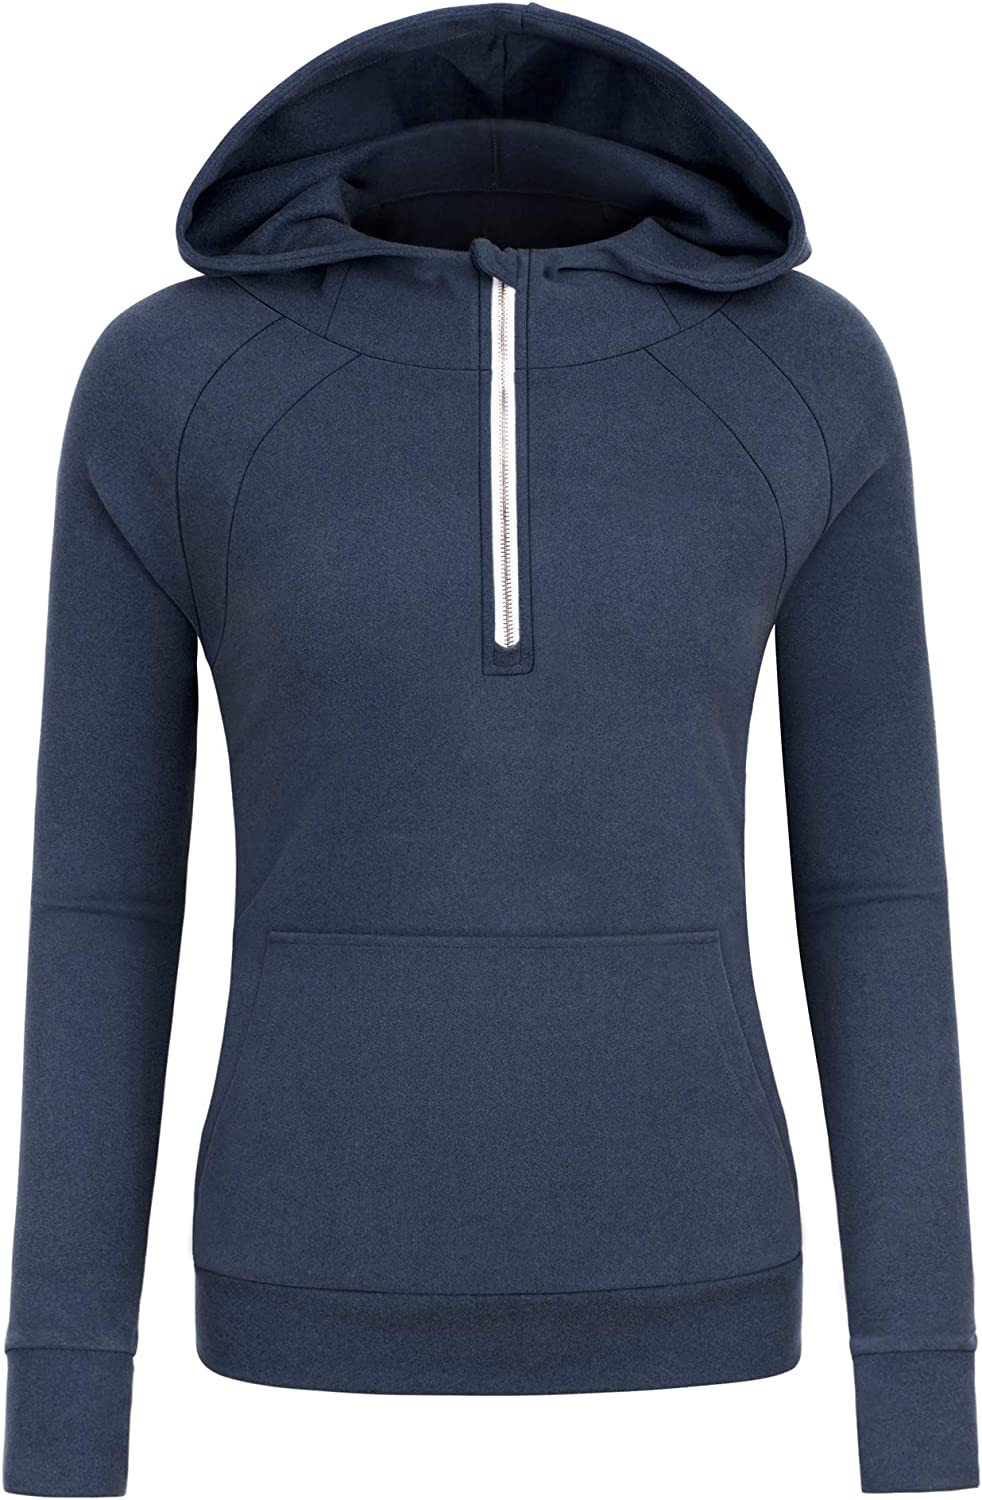 Reshe Women's Casual Hoodies Tunic Sweatshirts Jackets Plus Size Hoodie with Pockets, S-5XL